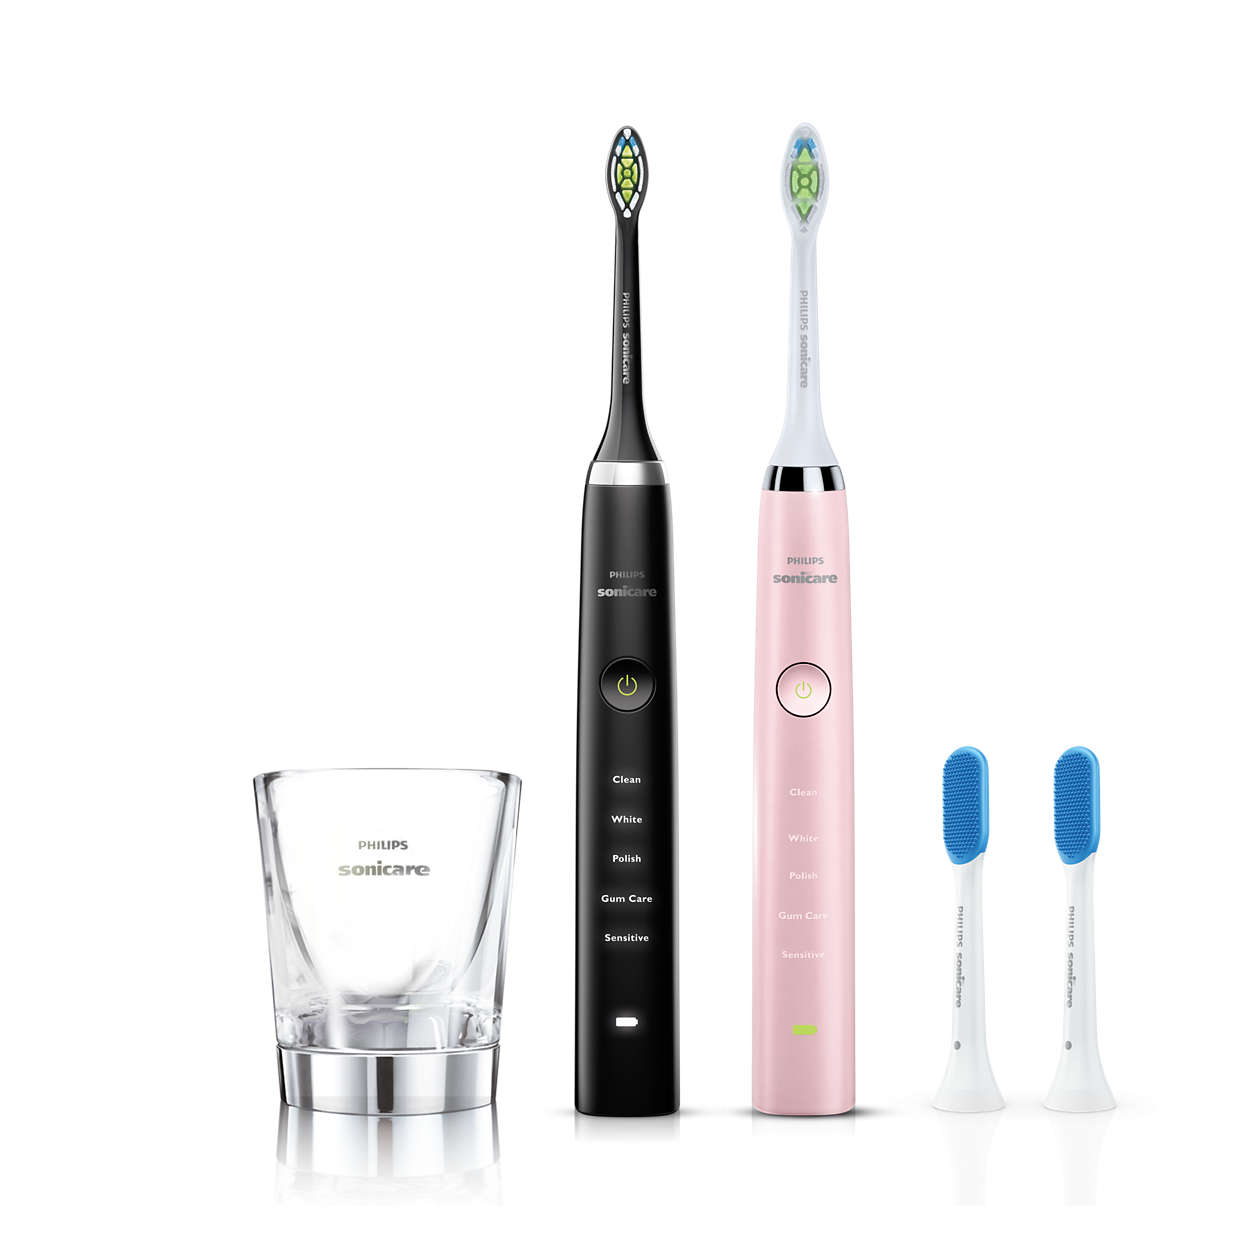 diamondclean sonic electric toothbrush hx9368 35 sonicare. Black Bedroom Furniture Sets. Home Design Ideas